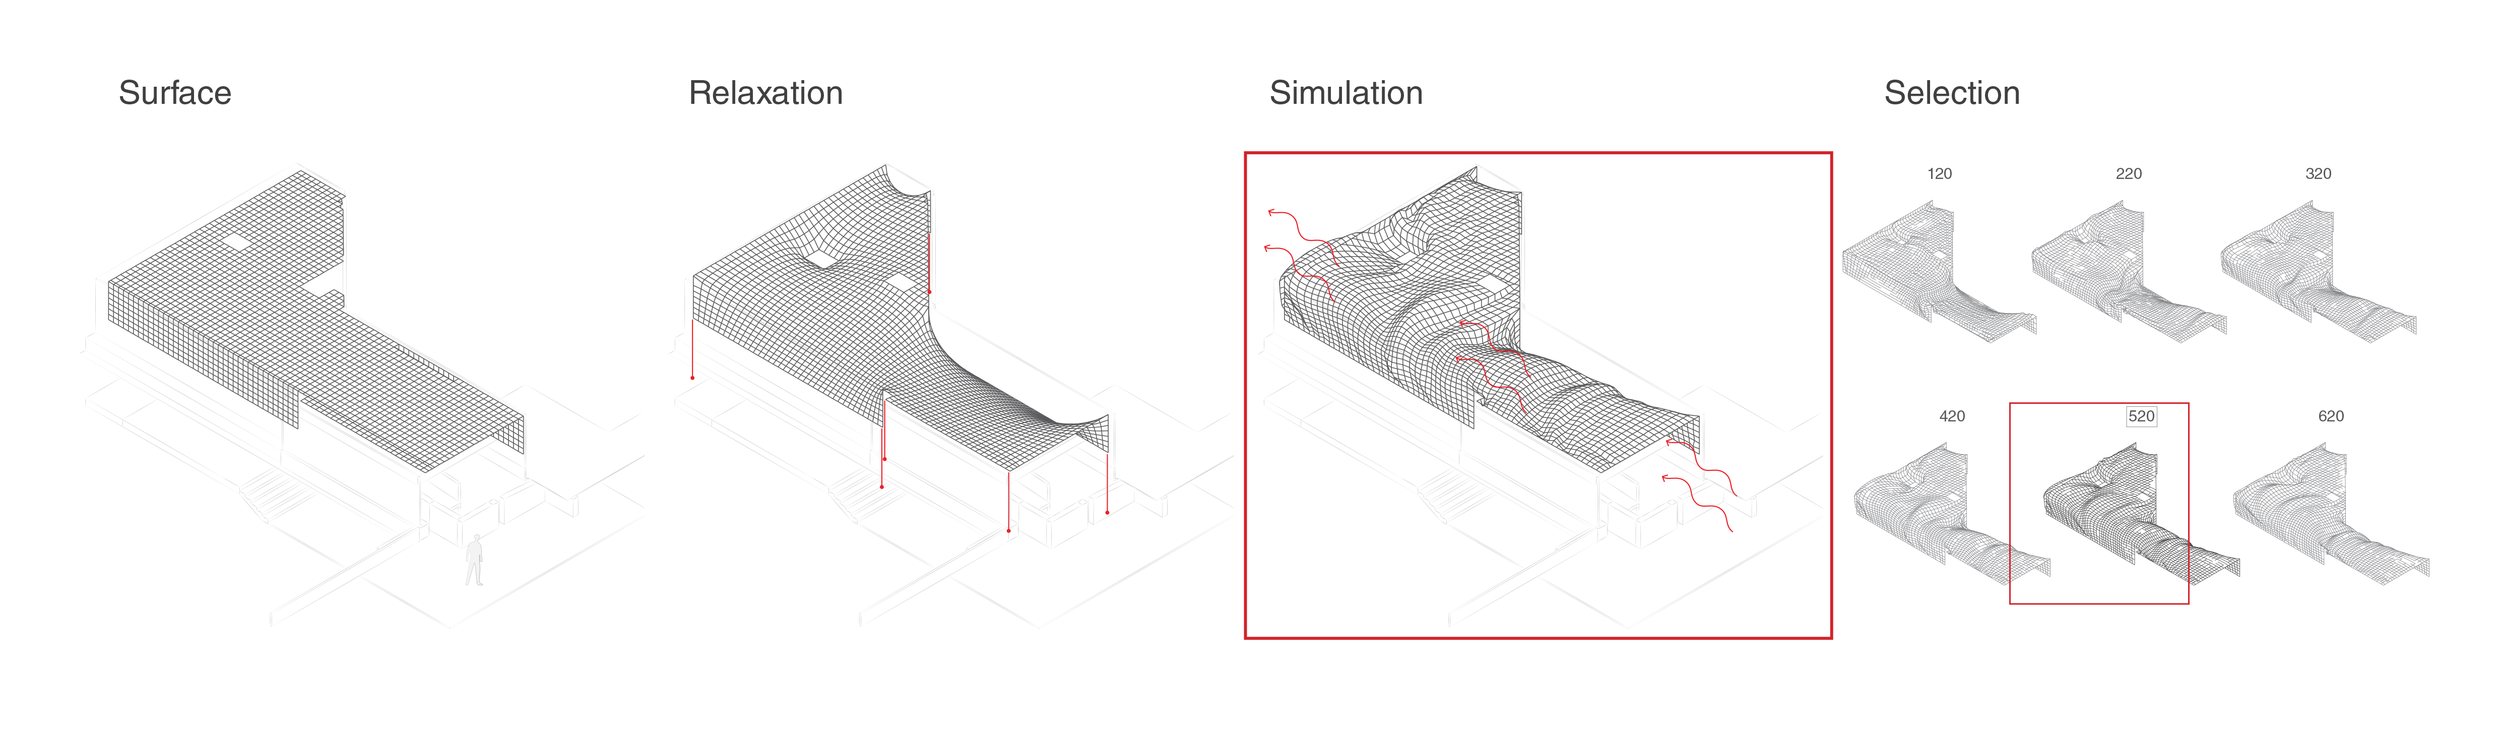 Form finding simulation process